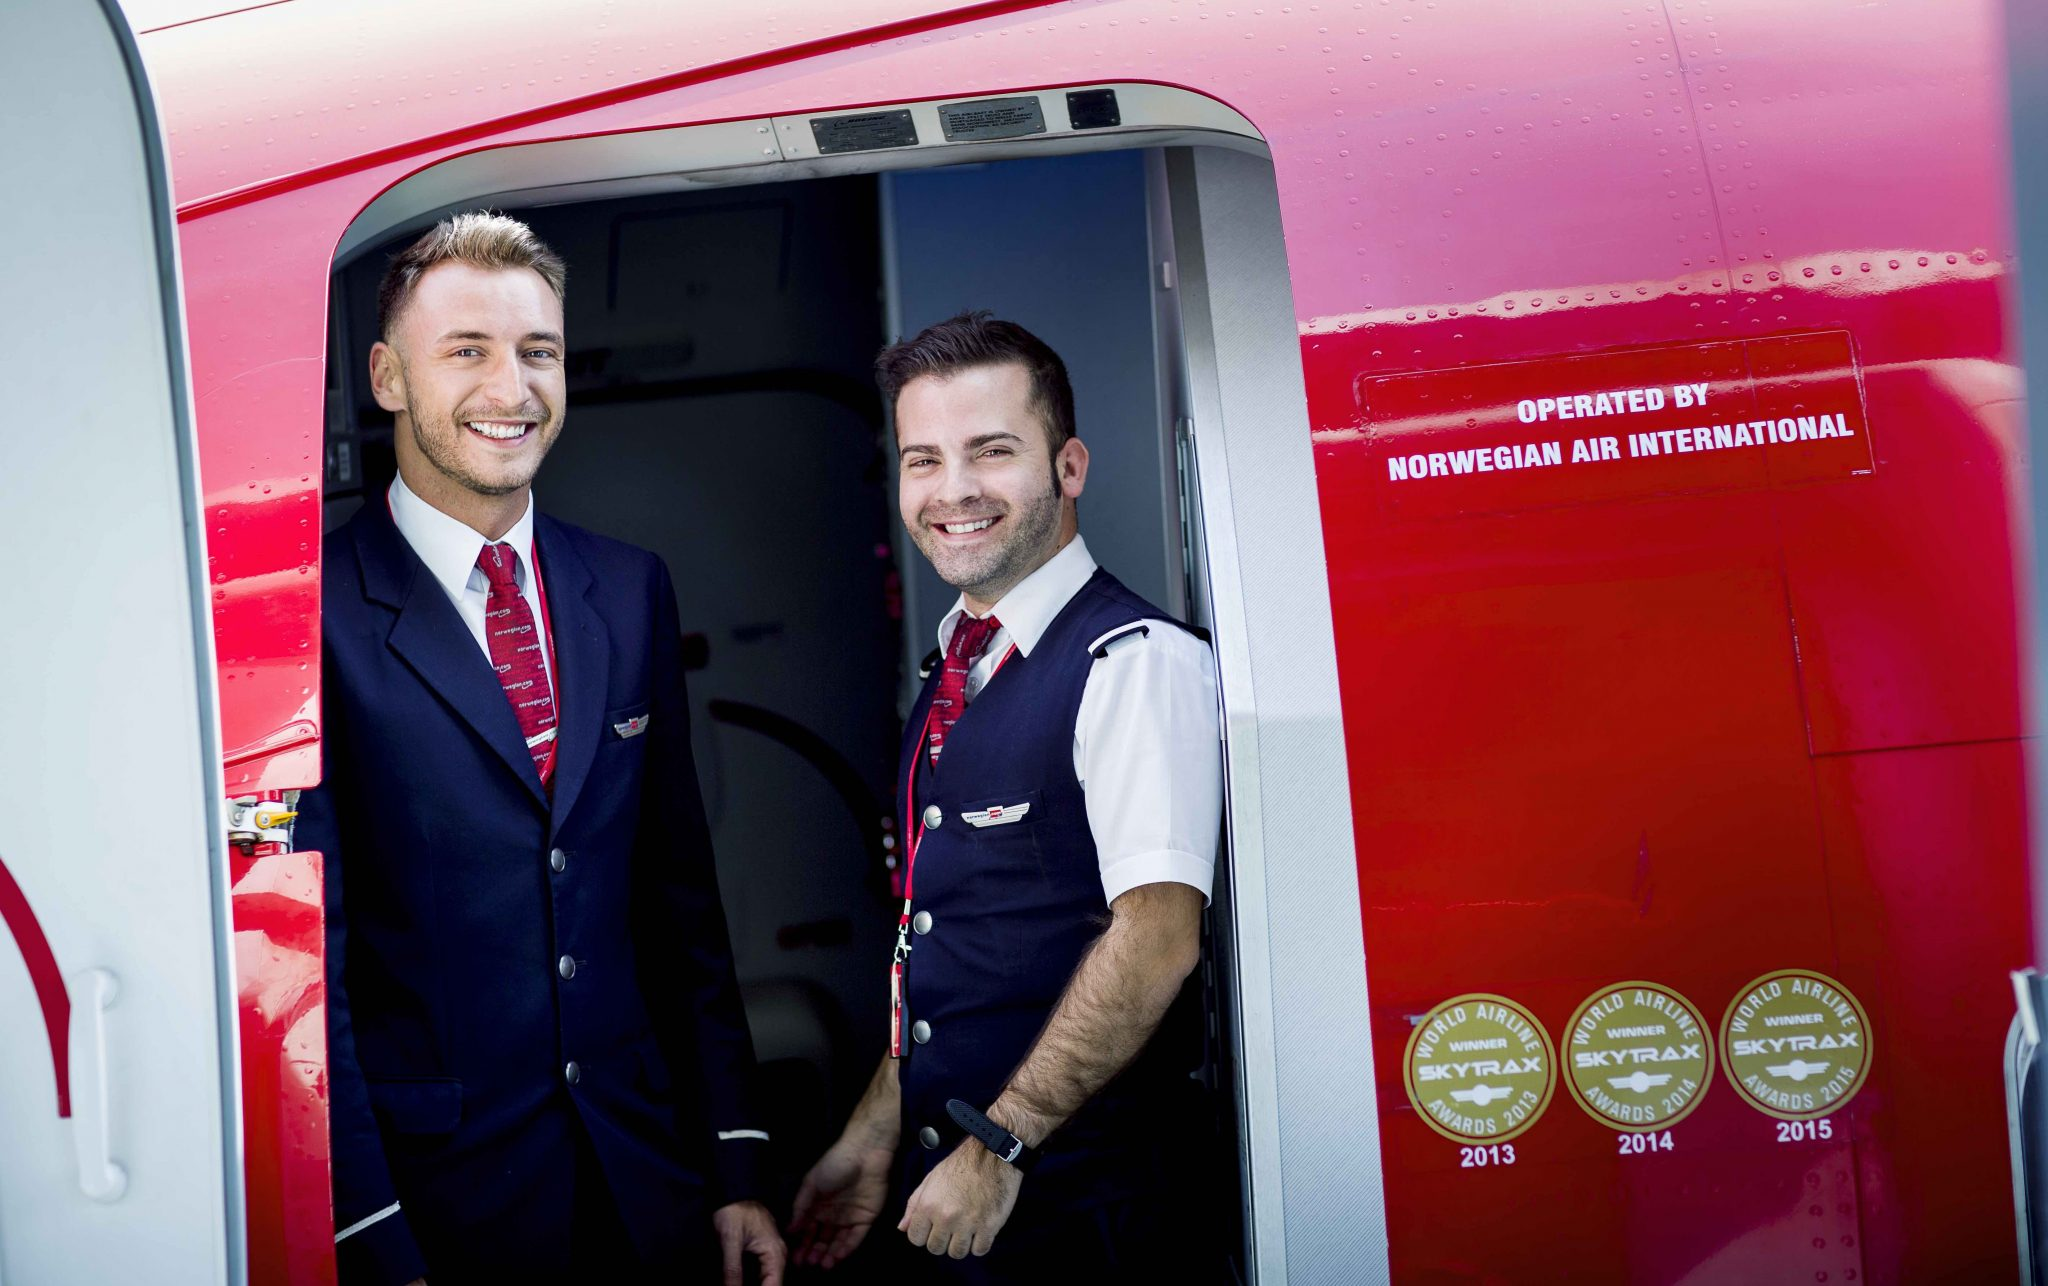 Norwegian is Recruiting Pilots in Dublin - Cabin Crew Recruitment to Follow Soon